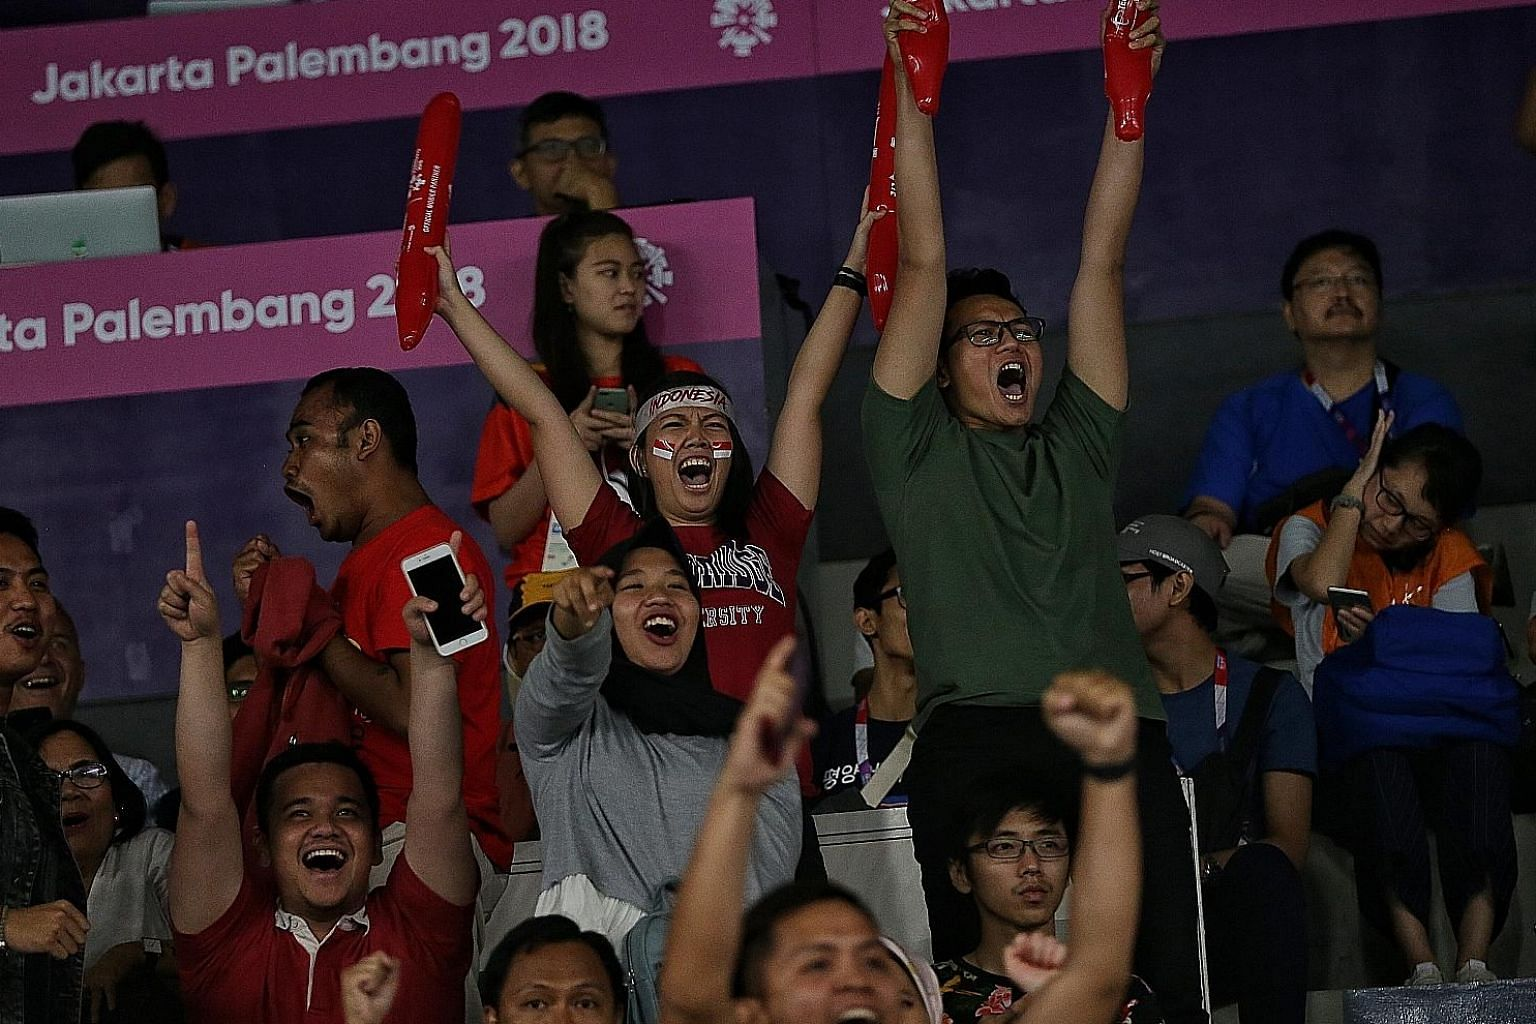 To say badminton is like a religion to Indonesians would not be an understatement. The home crowd was in full voice yesterday as supporters like Evangeline Launy (with Indonesia flag stickers on her cheeks) and Guntur Syayidu (in green) cheering thei